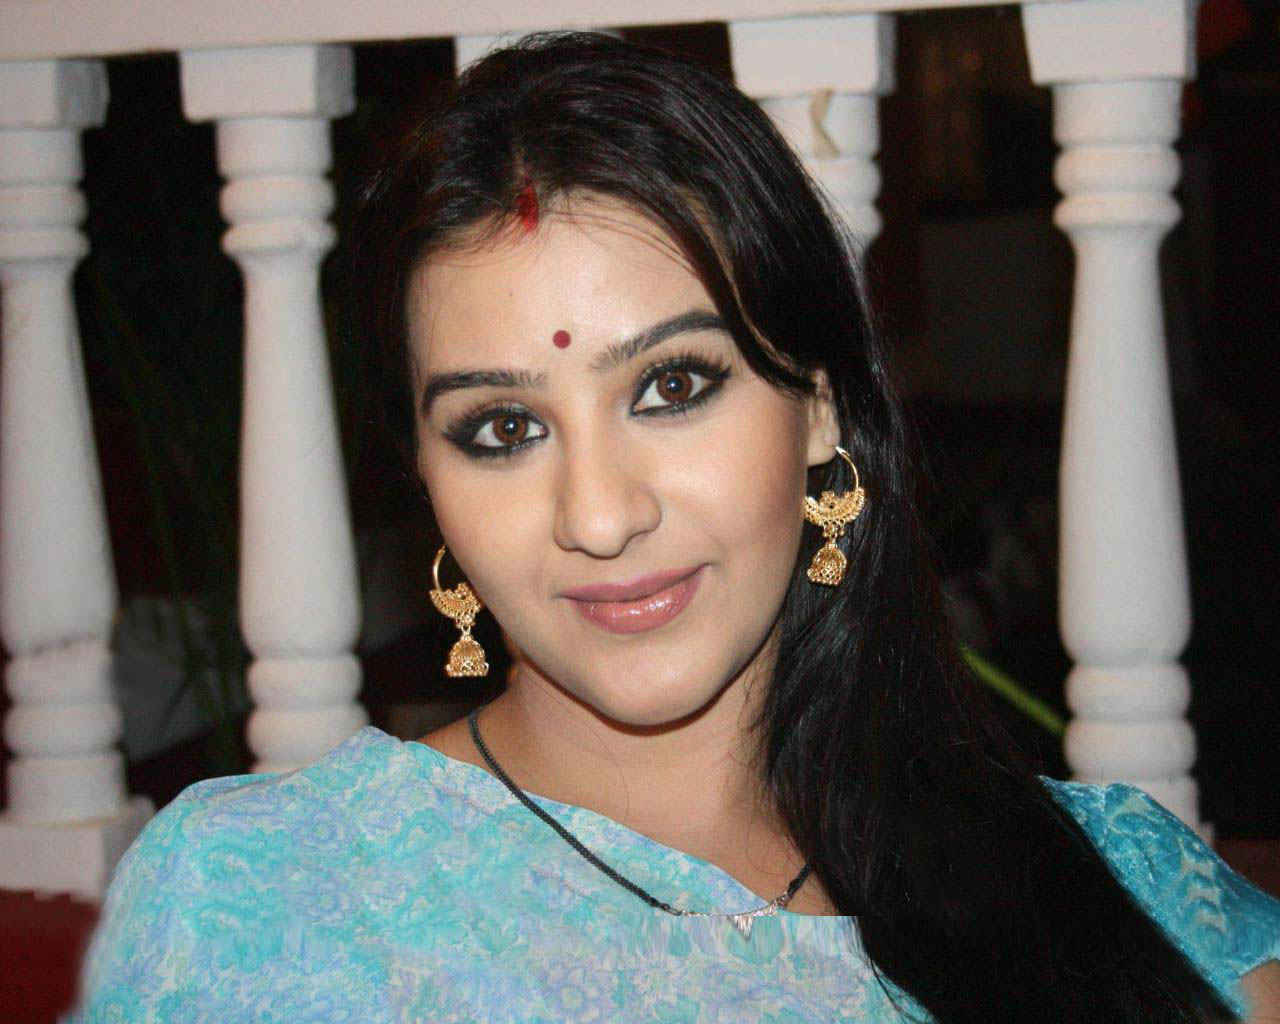 Shilpa Shinde as Koel Narayan in Chidiya Ghar